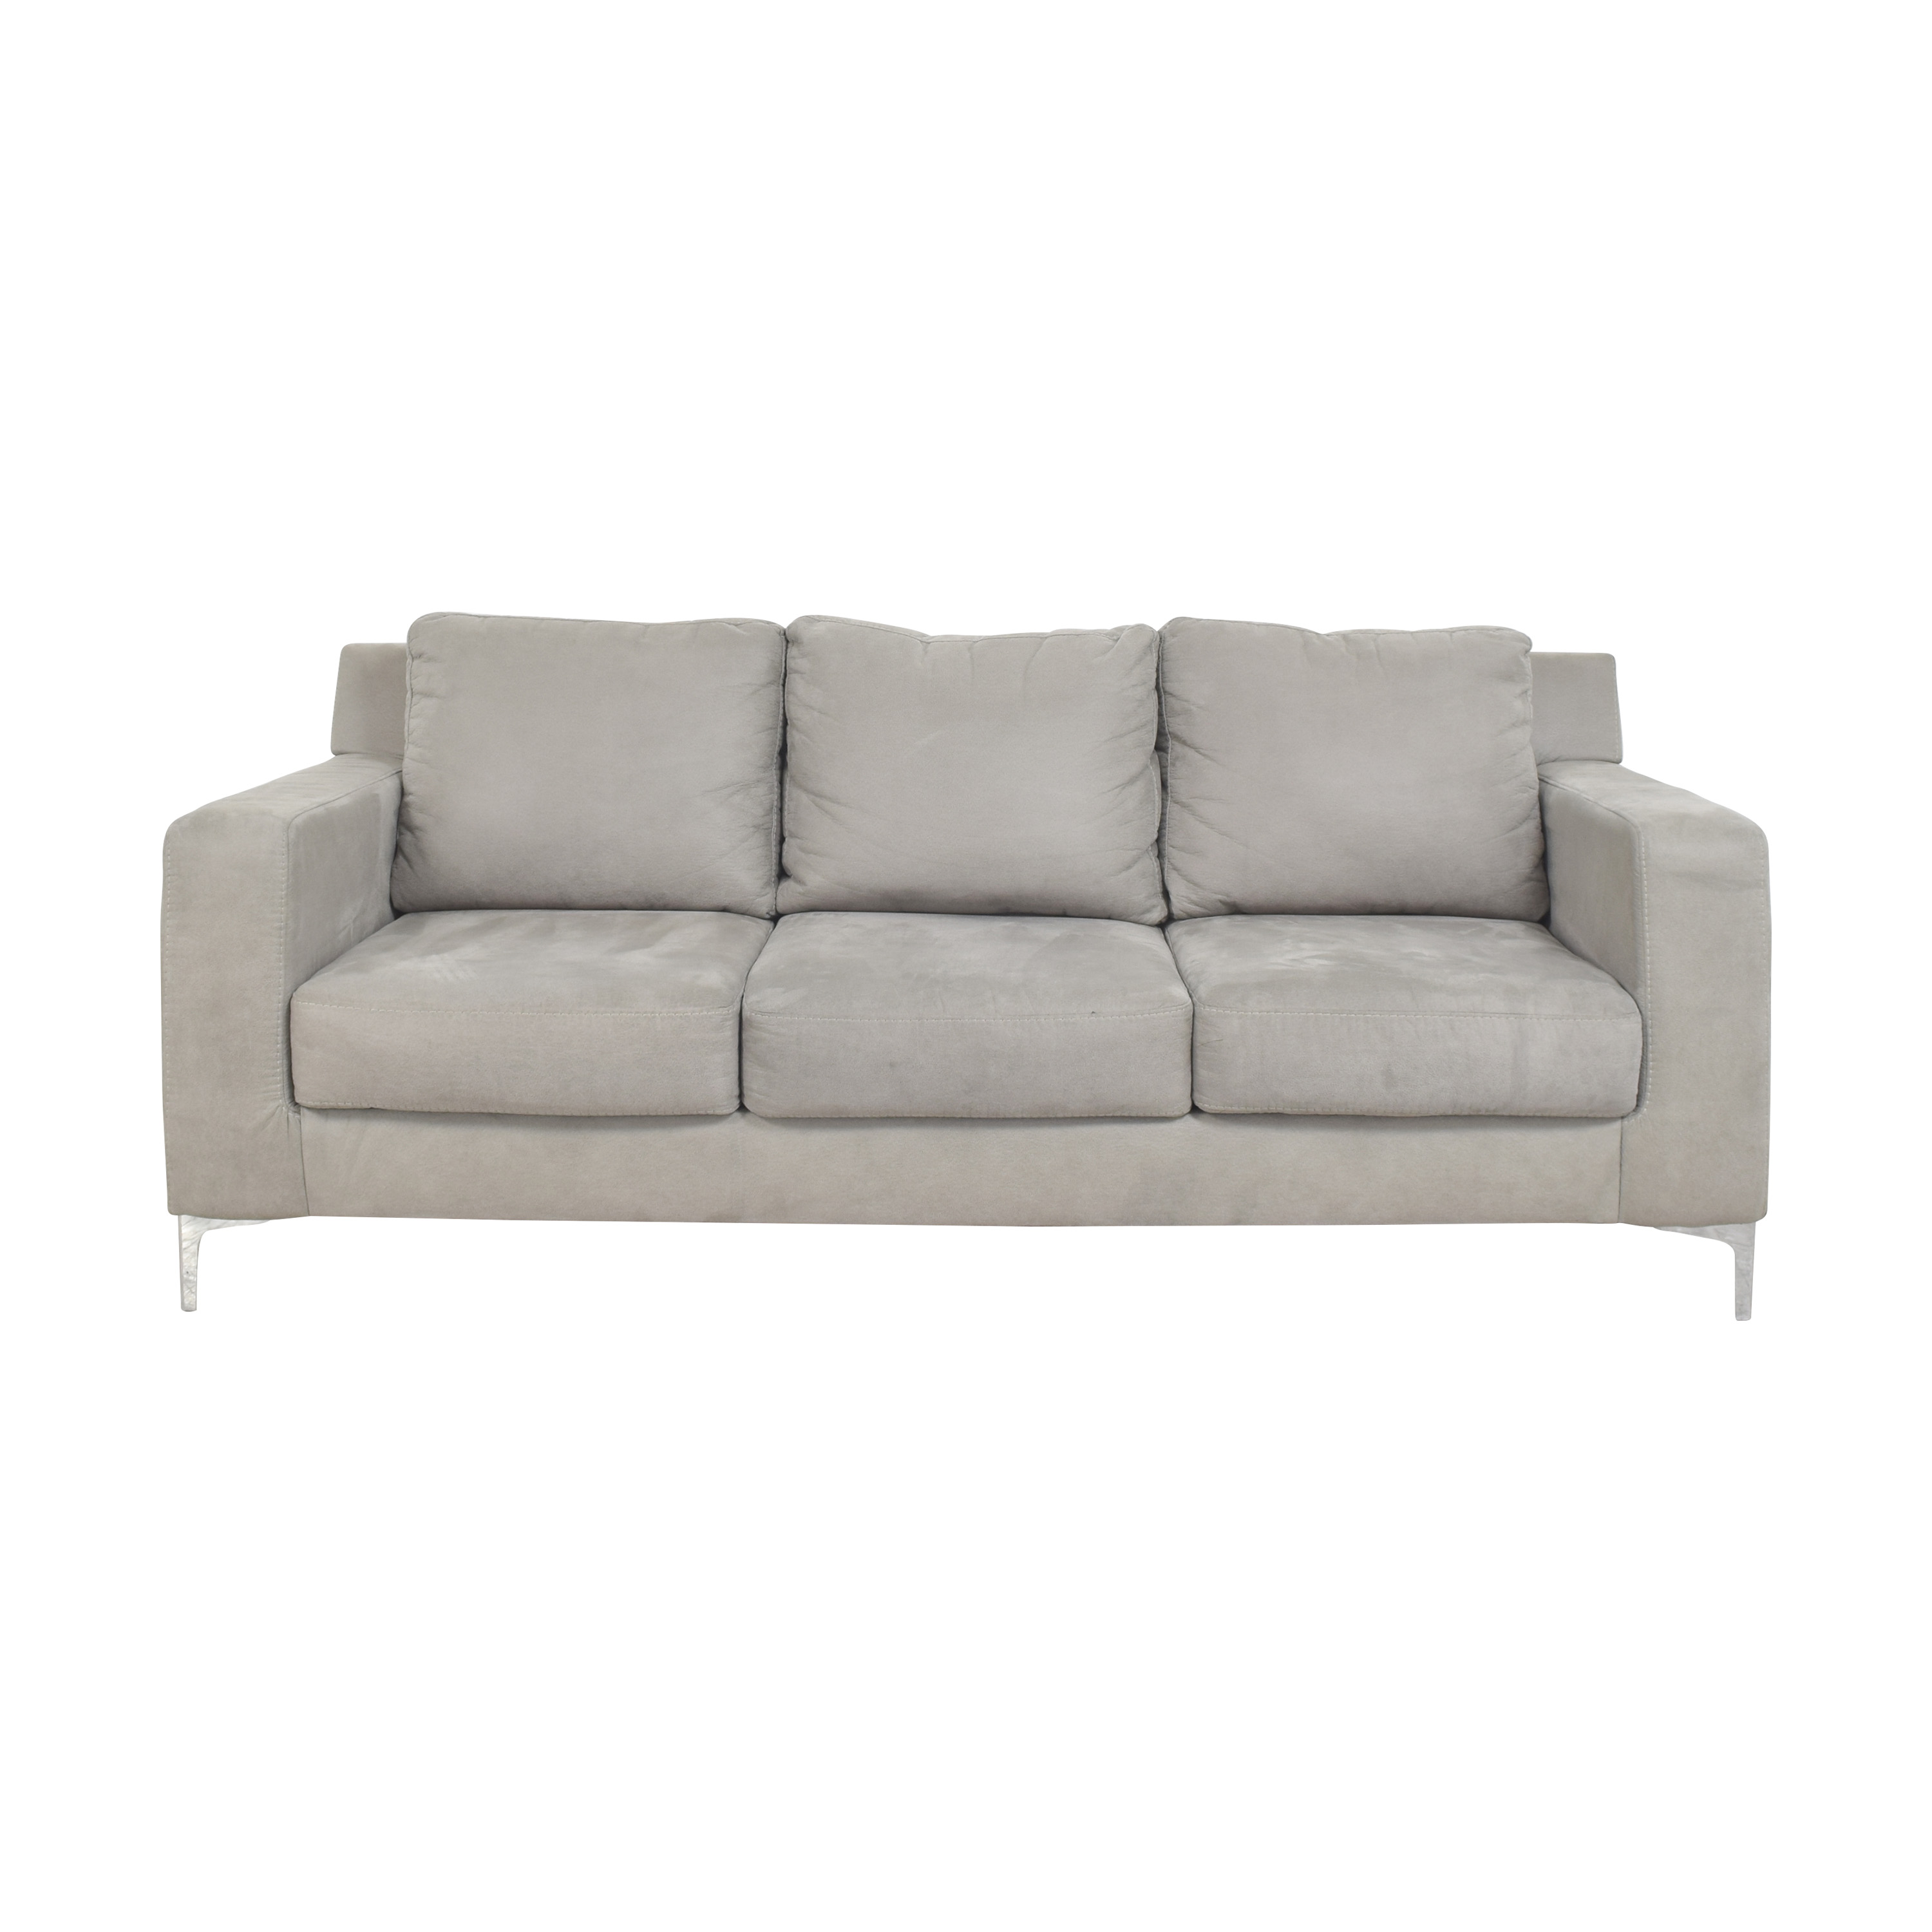 Ashley Furniture Ashley Furniture Modern Three Cushion Sofa price